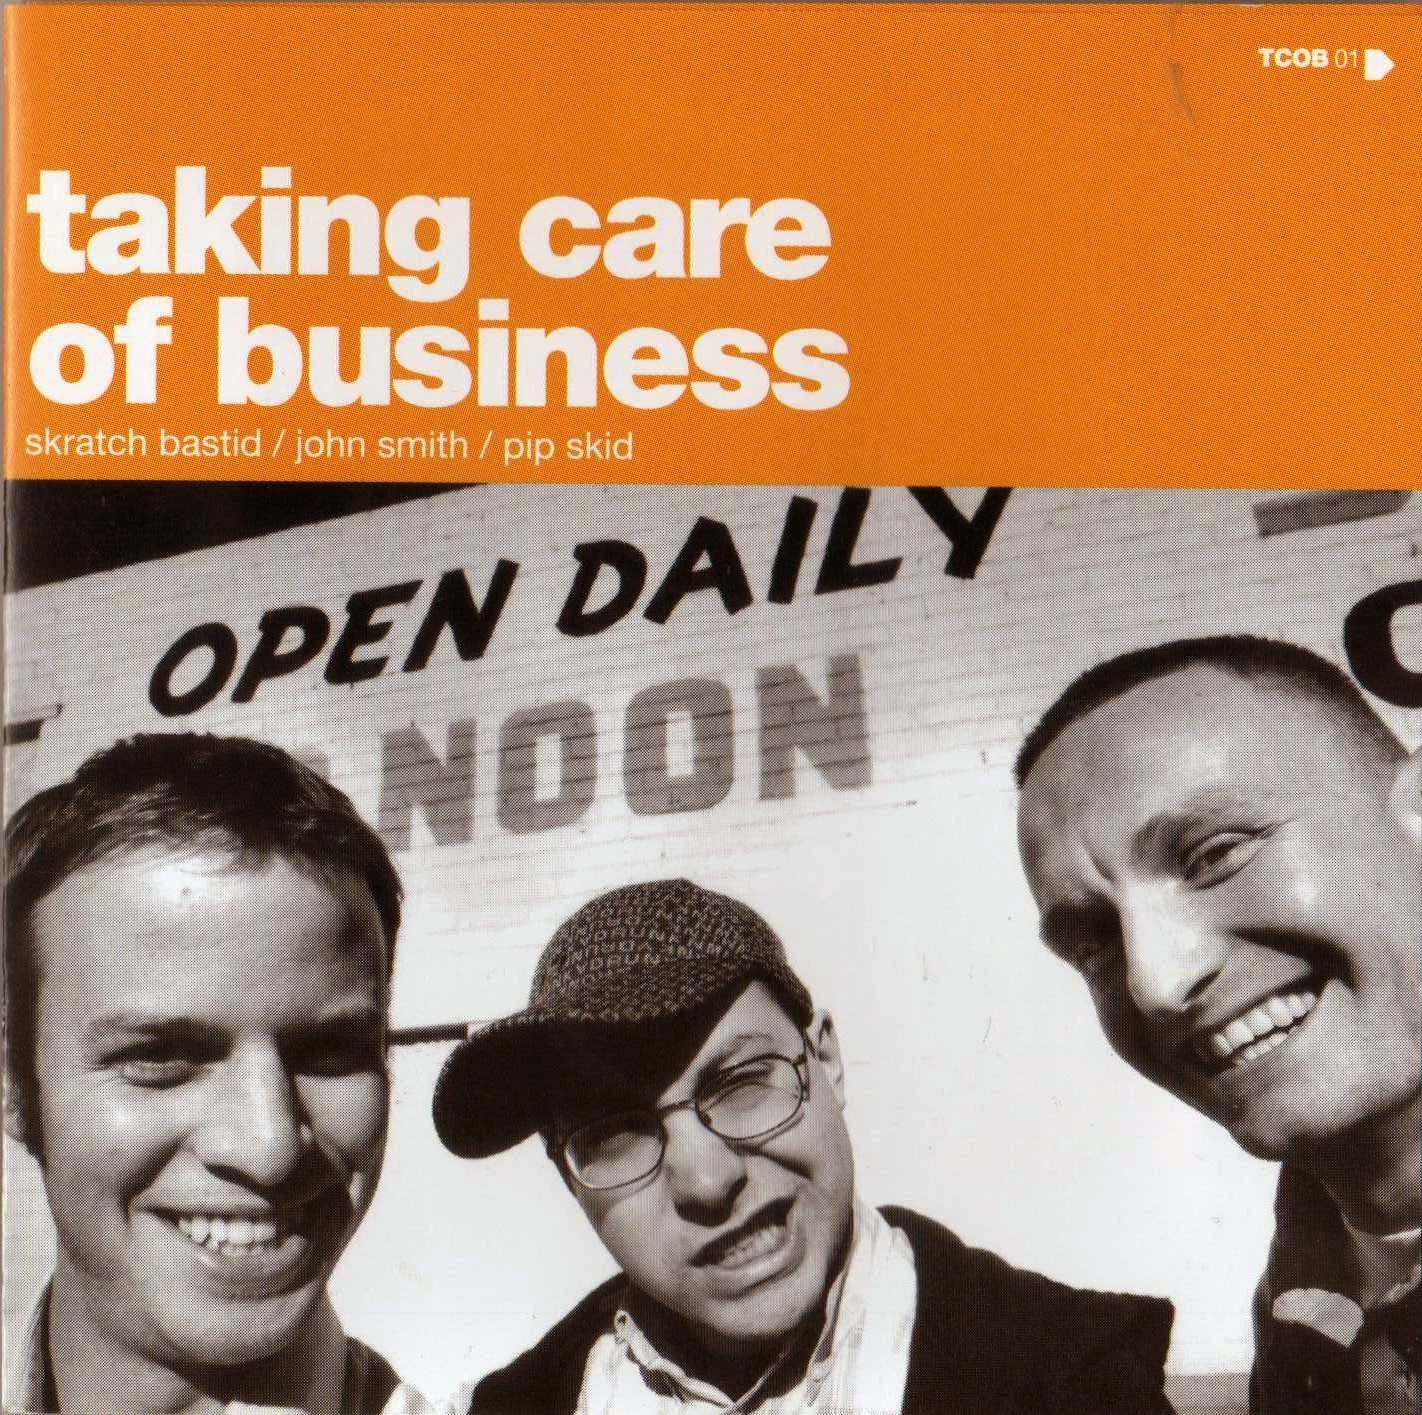 Skratch Bastid, Pip Skid, John Smith - Taking Care of Business, CD - The Giant Peach